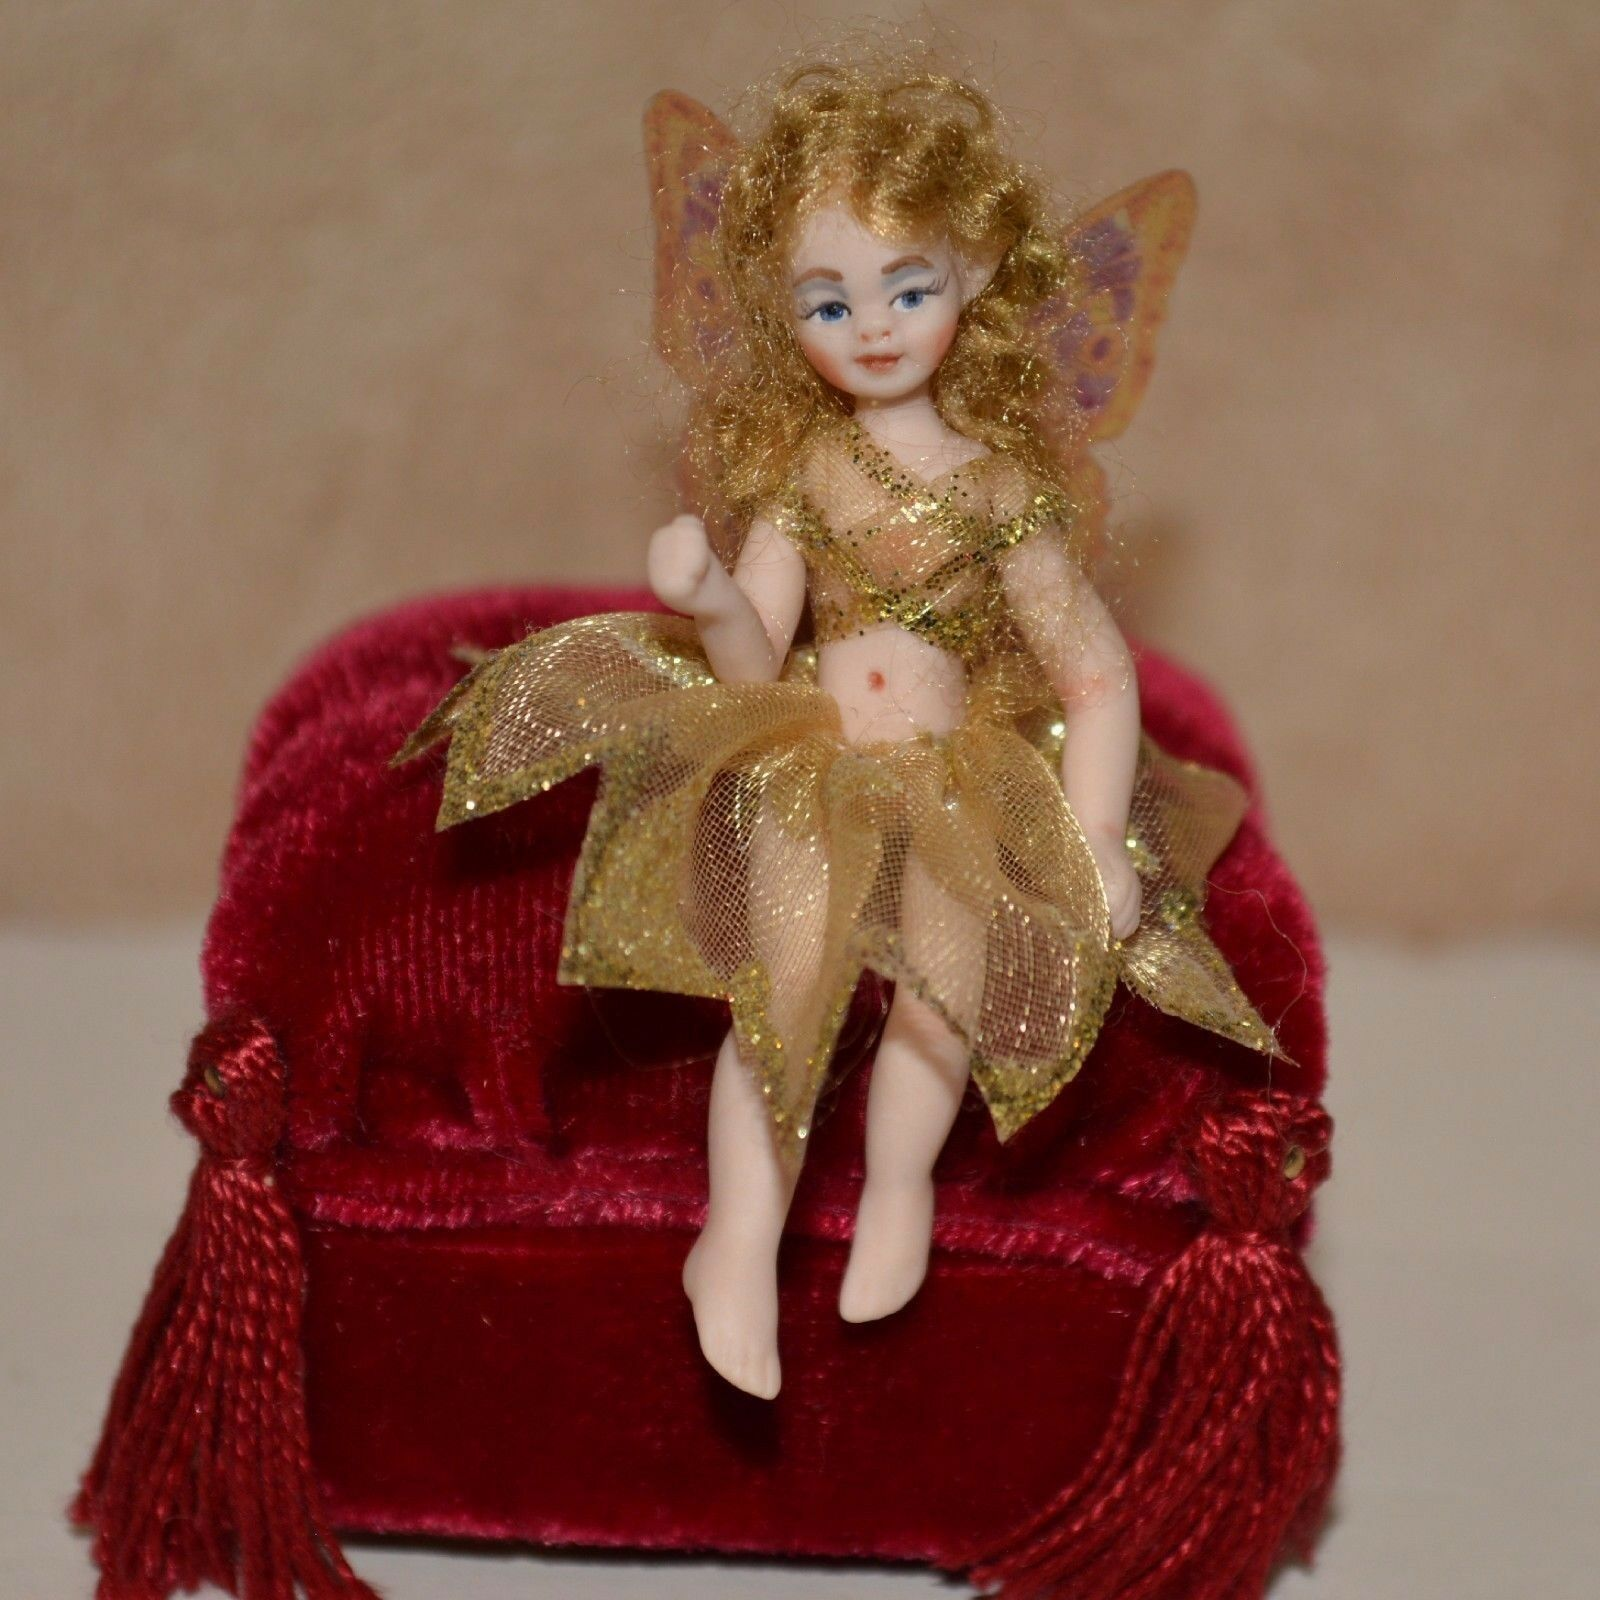 Miniature porcelain doll fairy girl 1 12 dollhouse